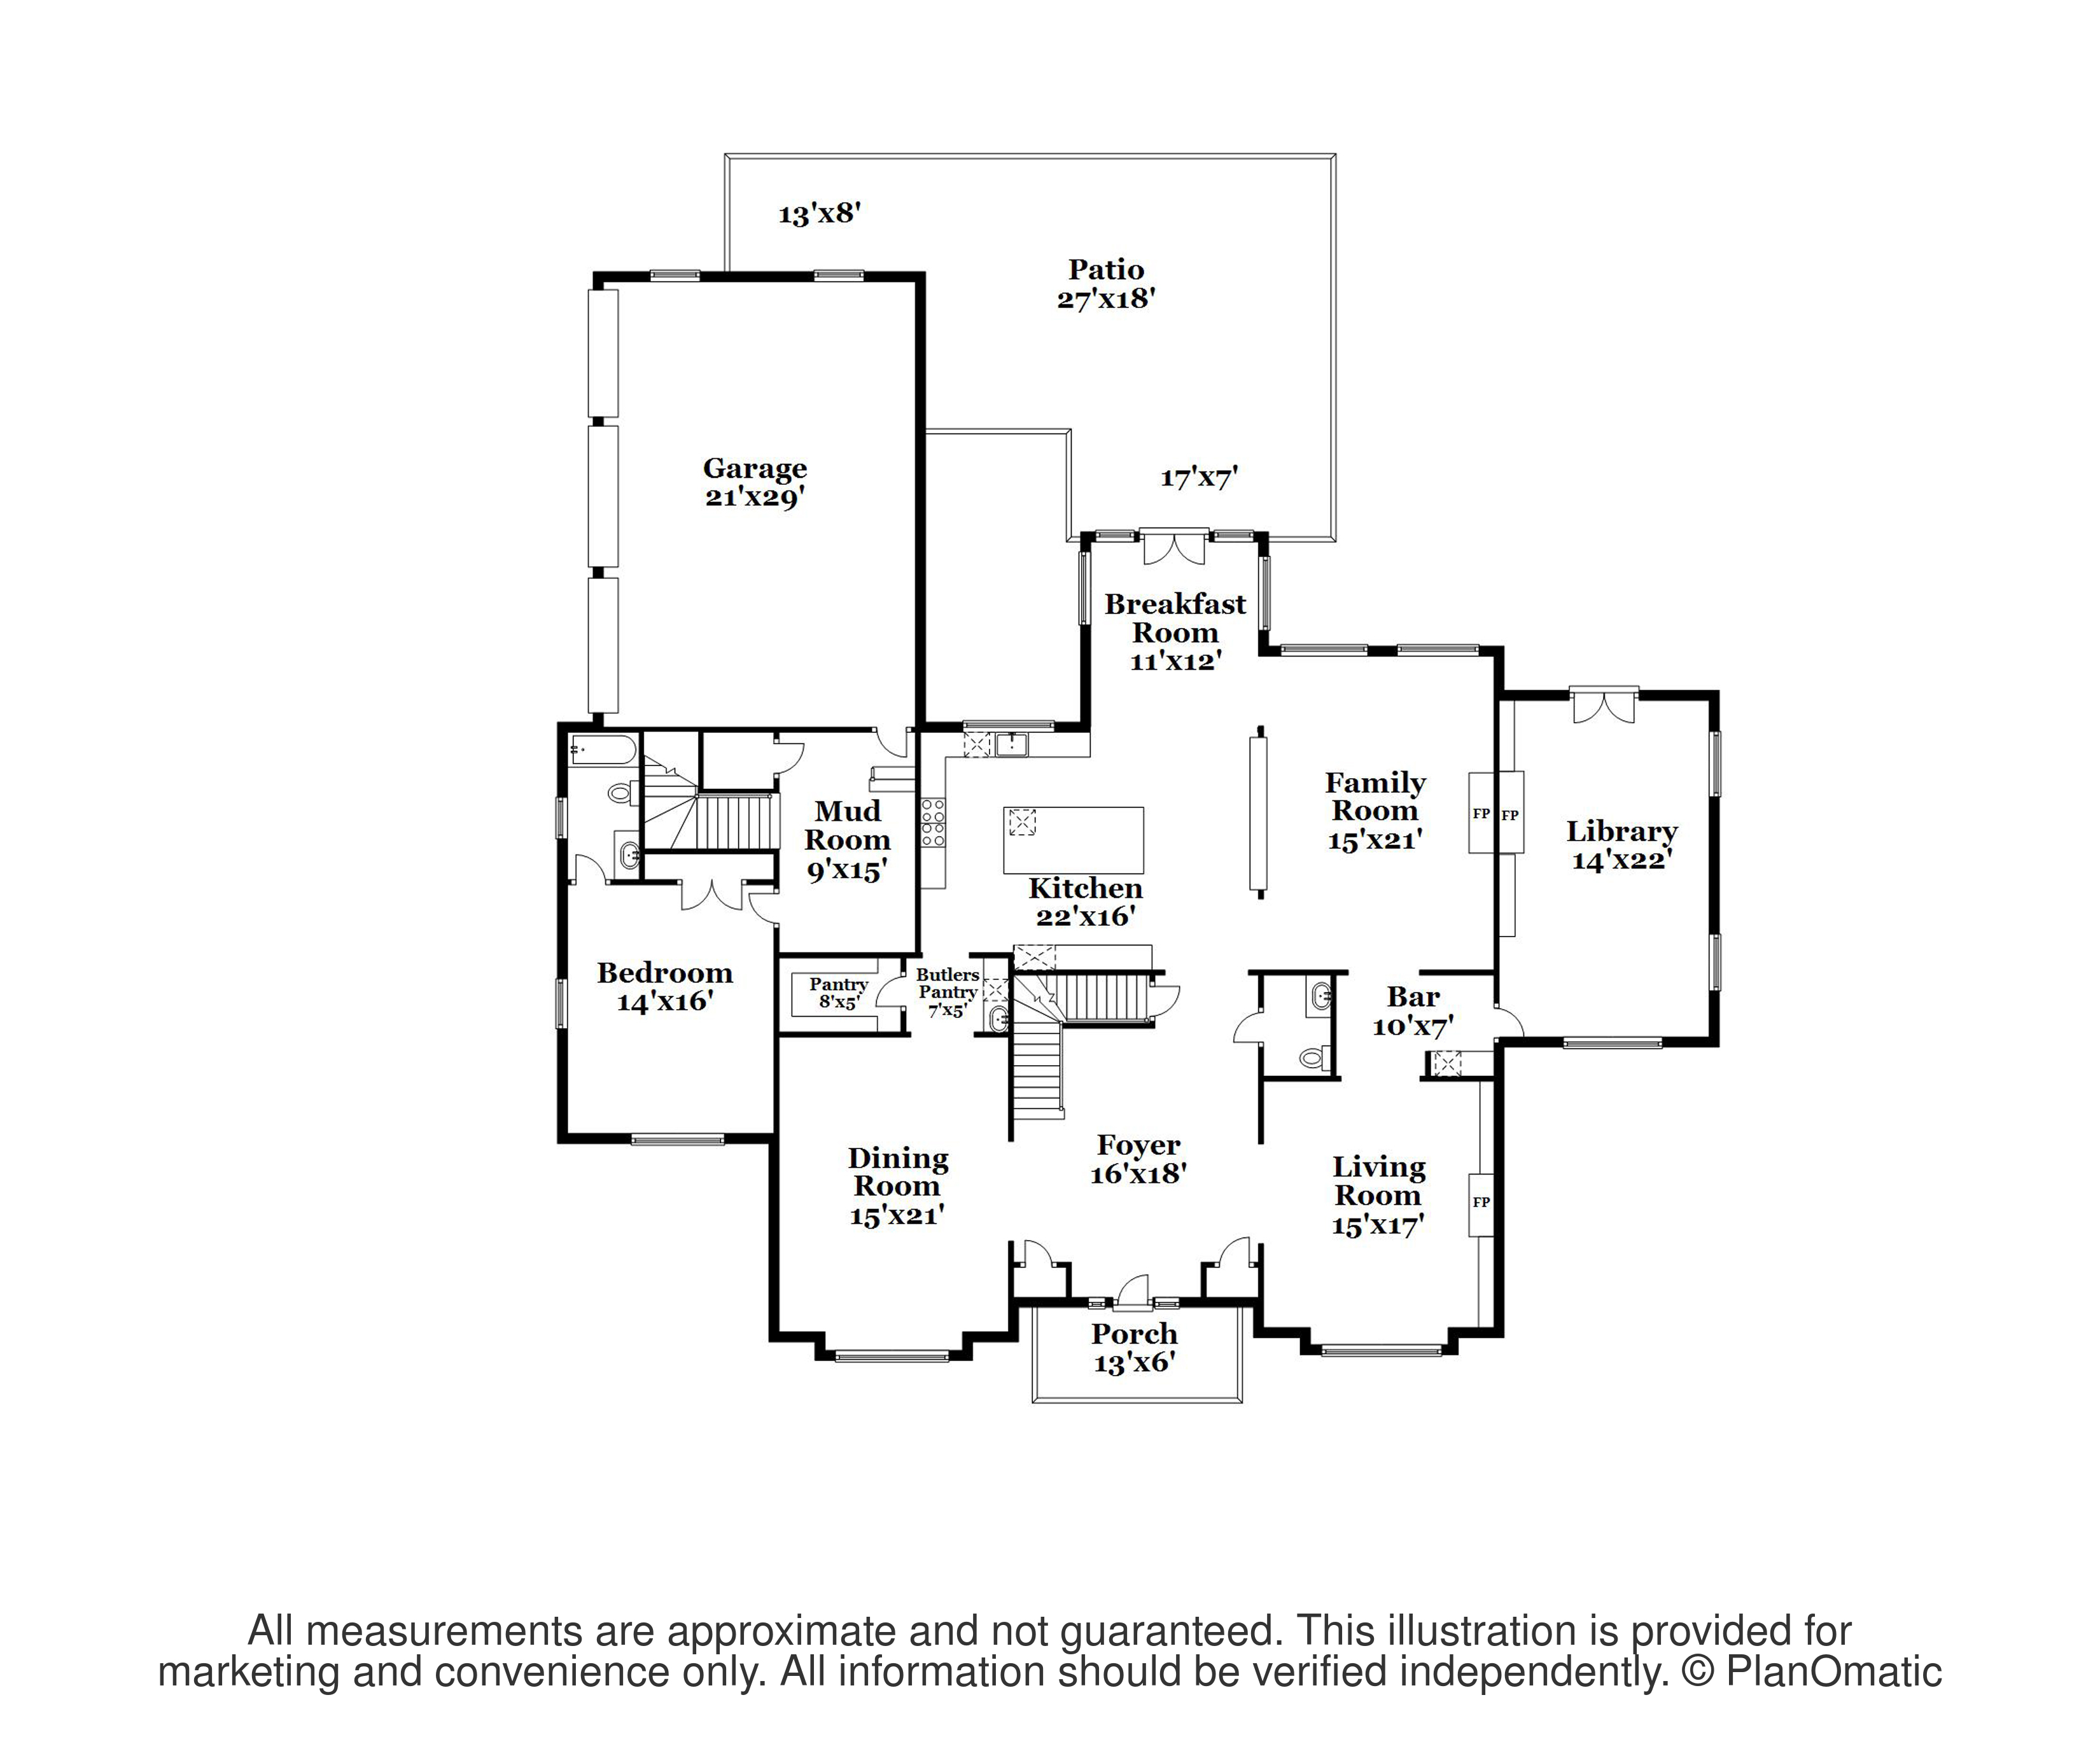 Single Family Homes for Sale at Heirloom-Quality Details In Edgerstoune Estate 220 Edgerstoune Road, Princeton, New Jersey 08540 United States